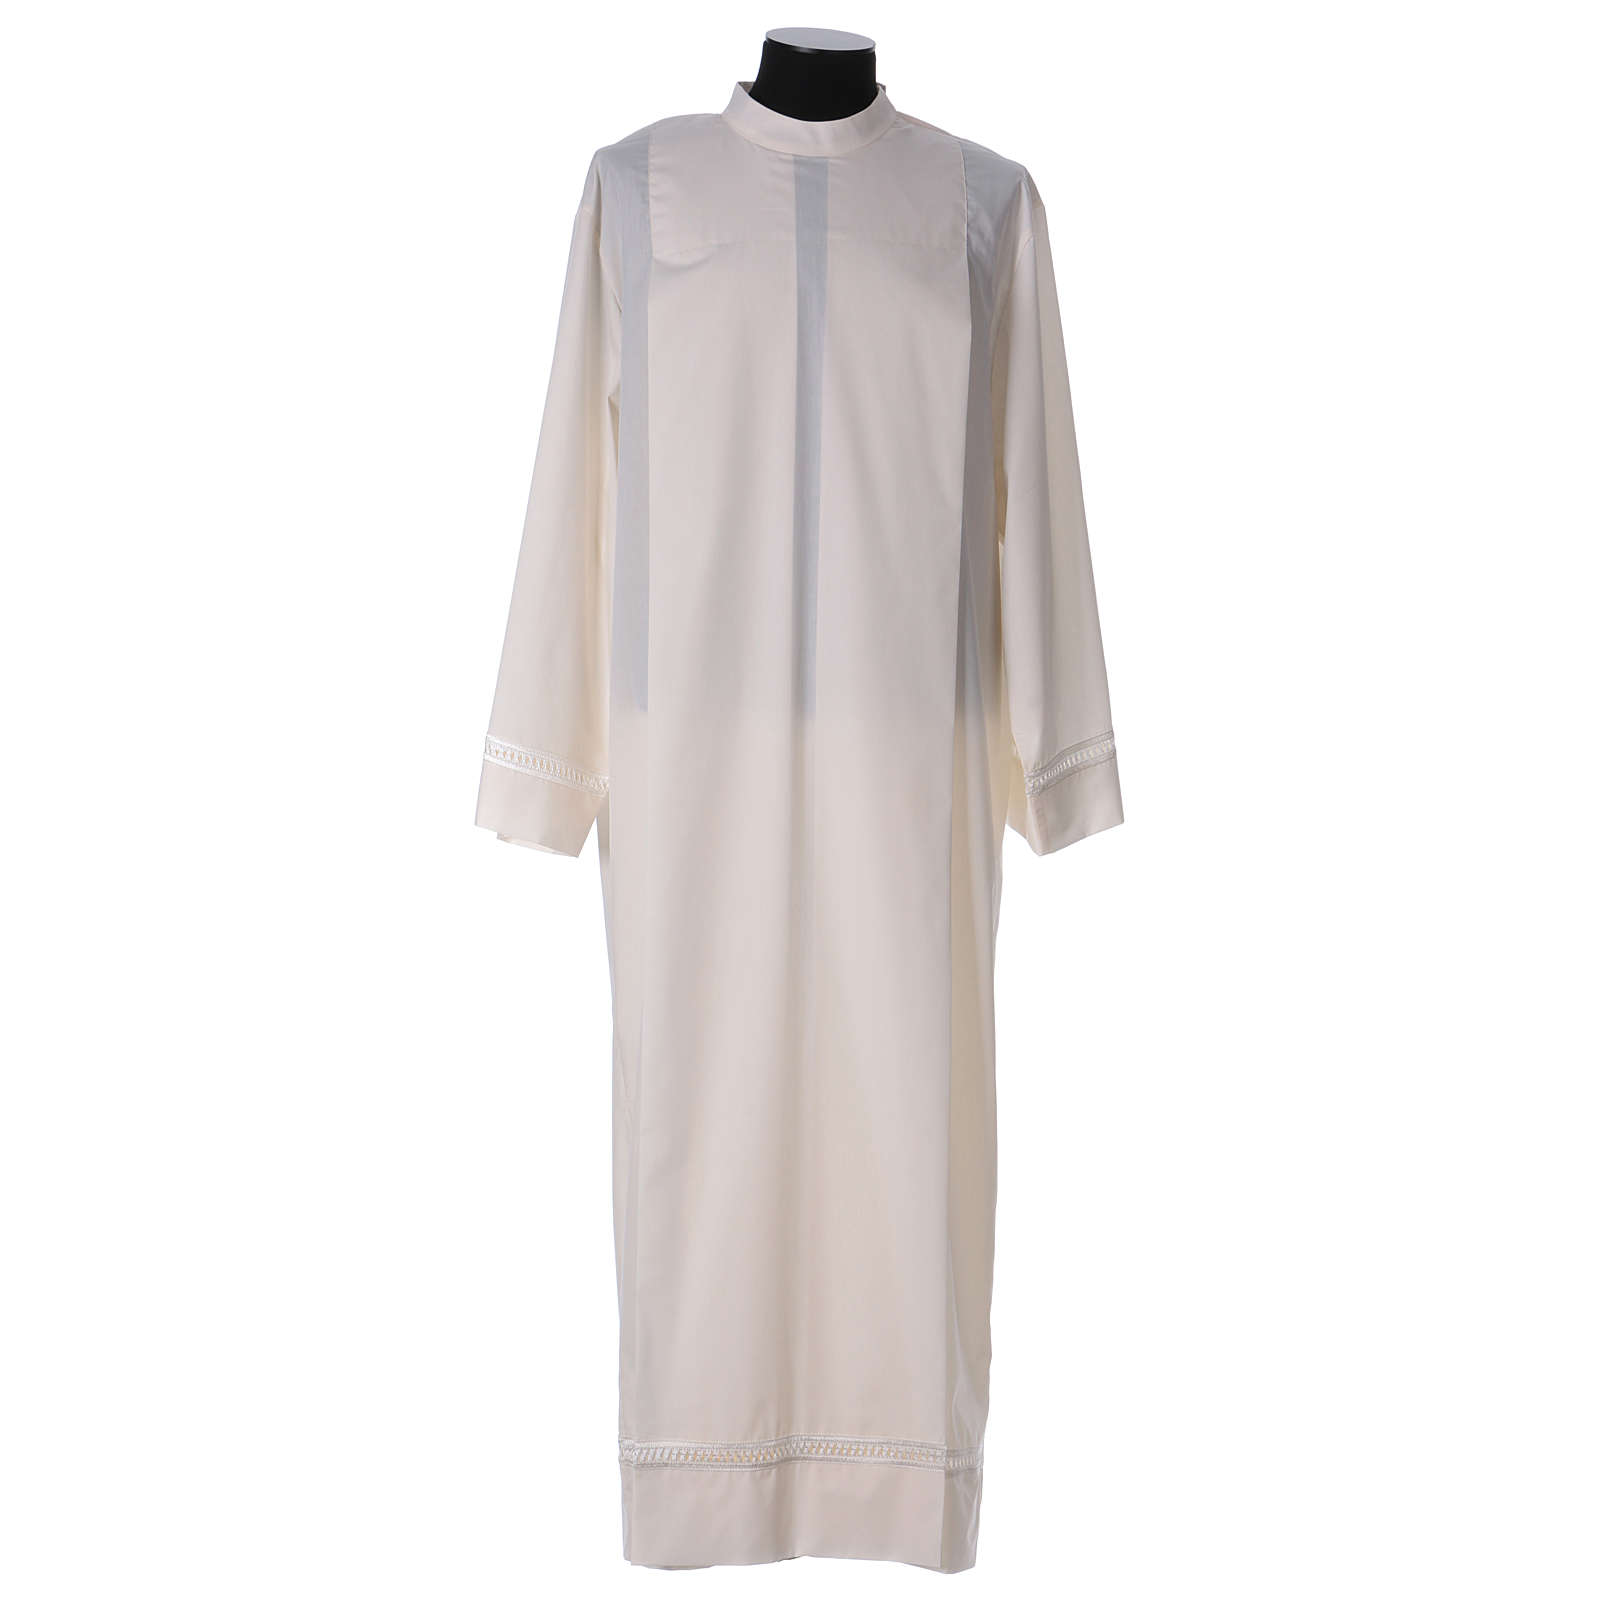 Alb with peahole stitch and shoulder zipper in ivory 65% polyester, 35% cotton 4